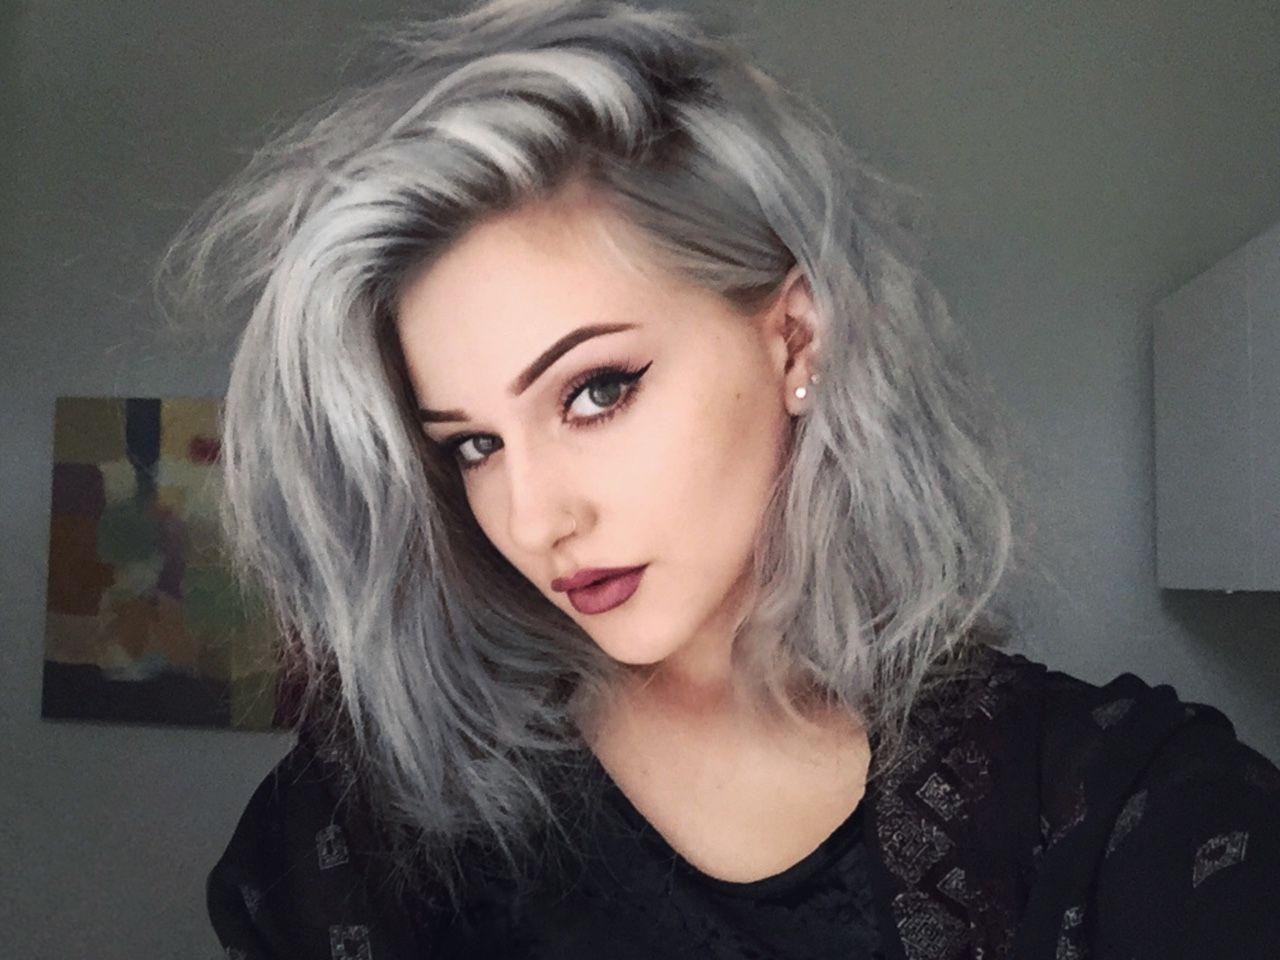 Bleached Granny Hairstyle - http://ninjacosmico.com/32-pastel-hairstyles-ideas/